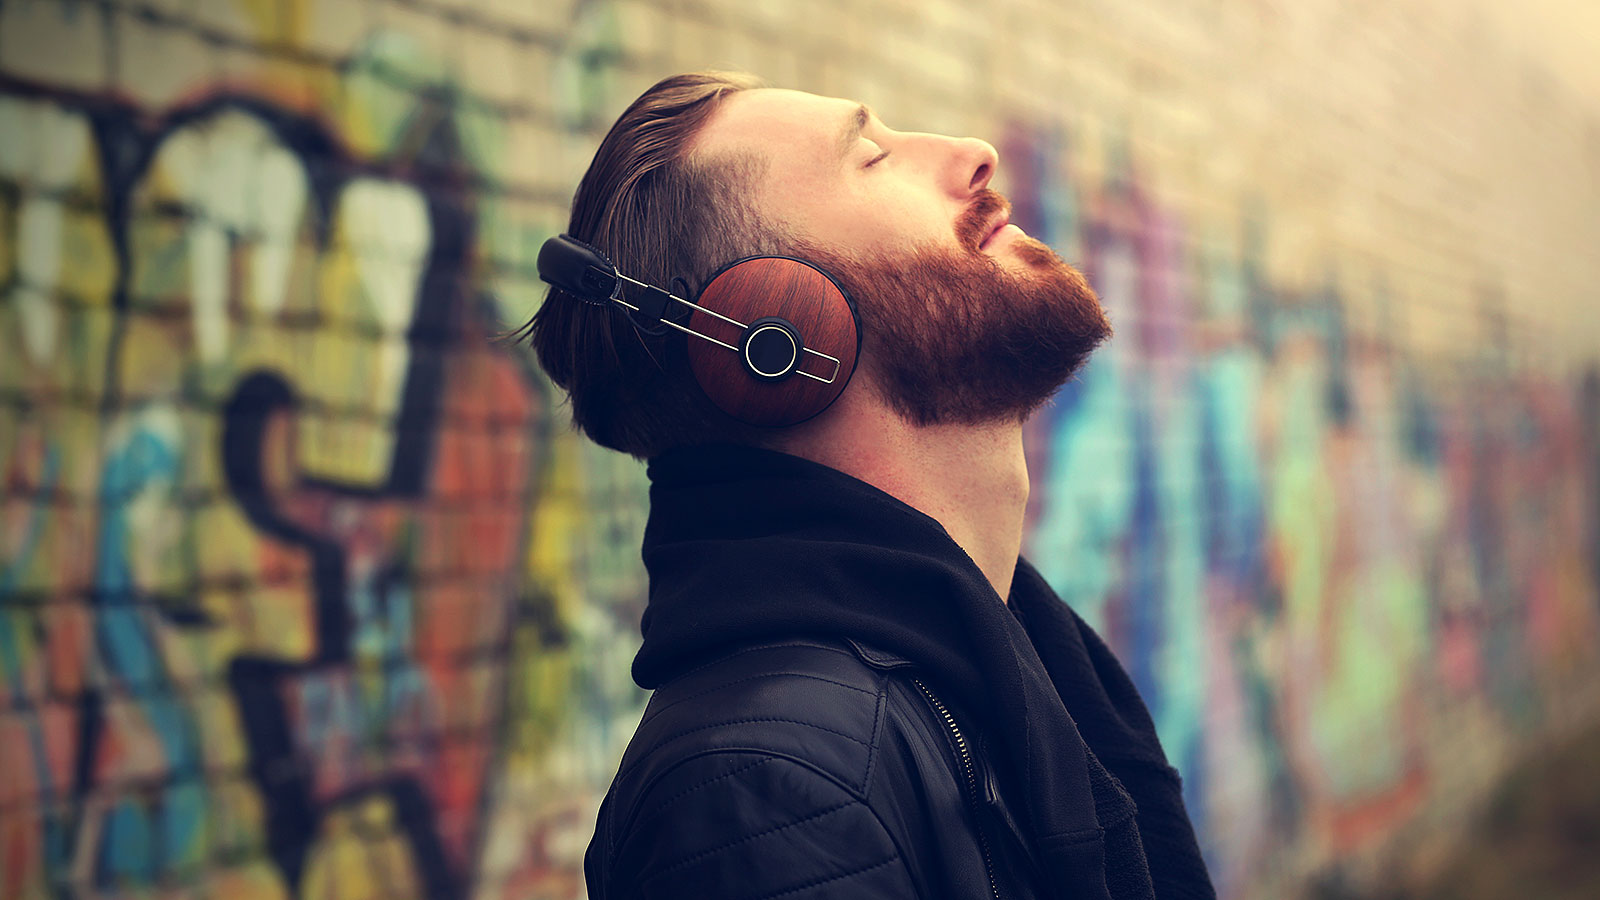 Study finds the type of music you listen to can impact your way of thinking